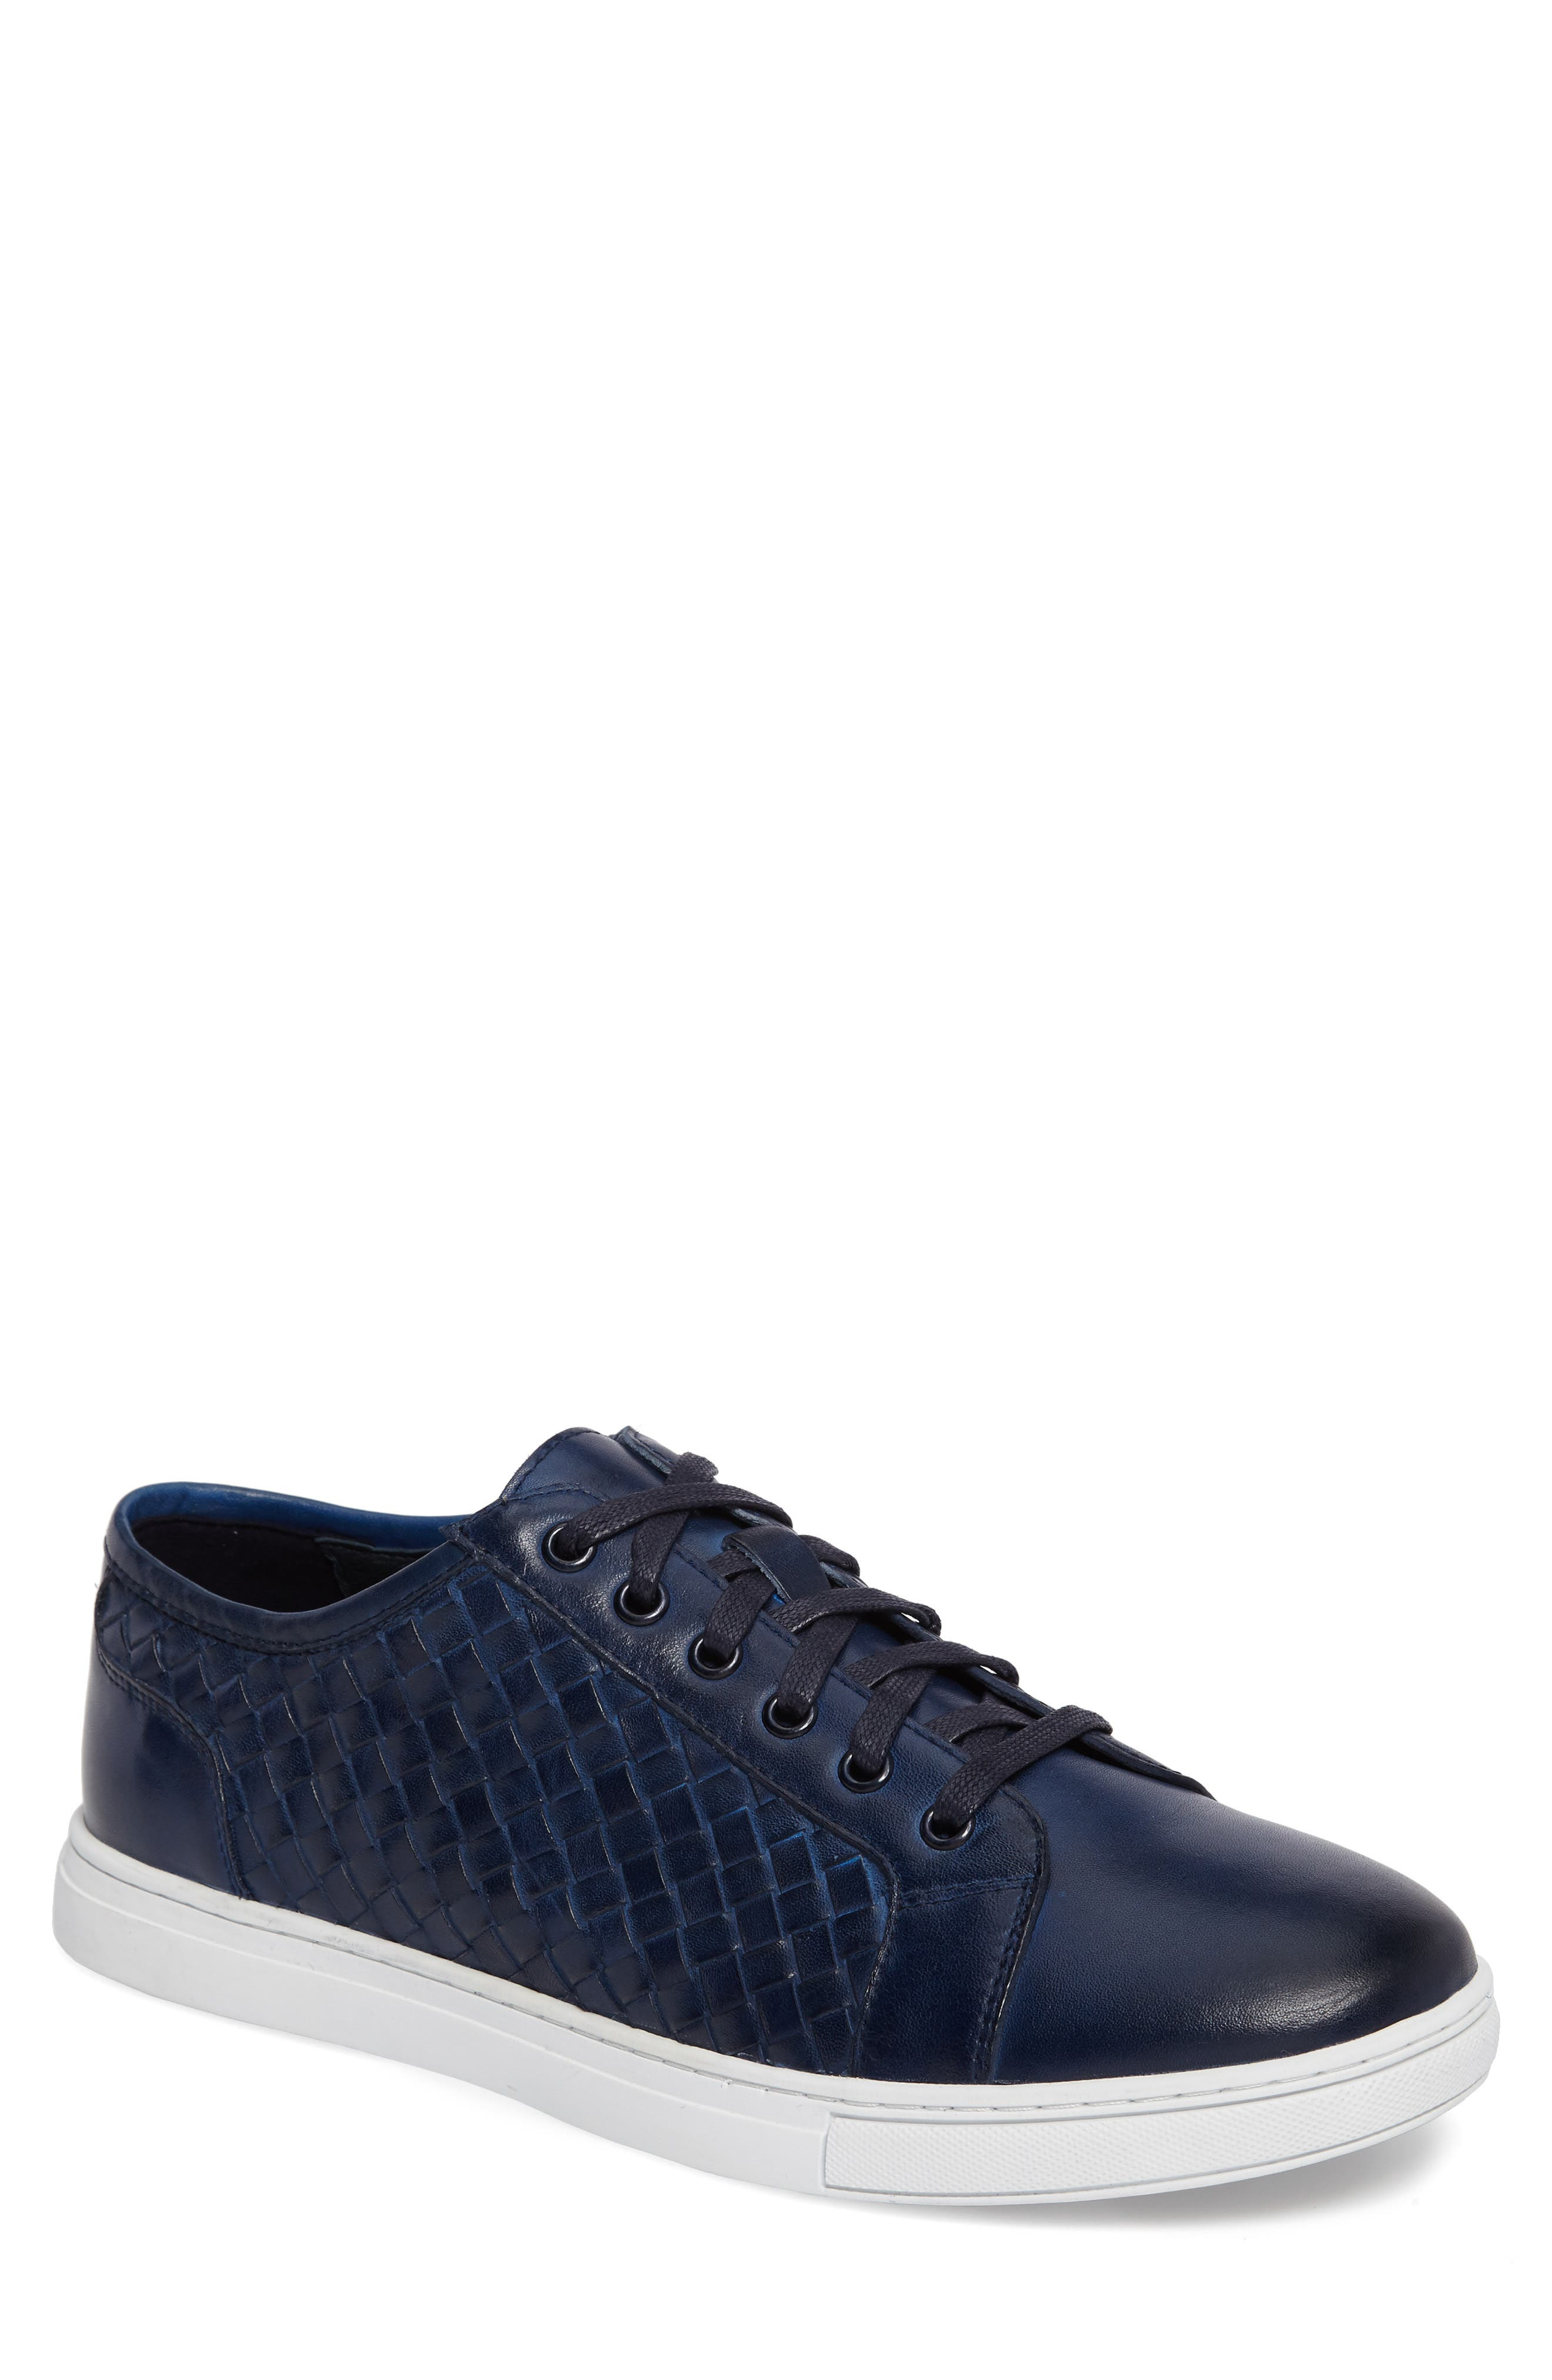 Fader Sneaker,                             Main thumbnail 1, color,                             Blue Leather